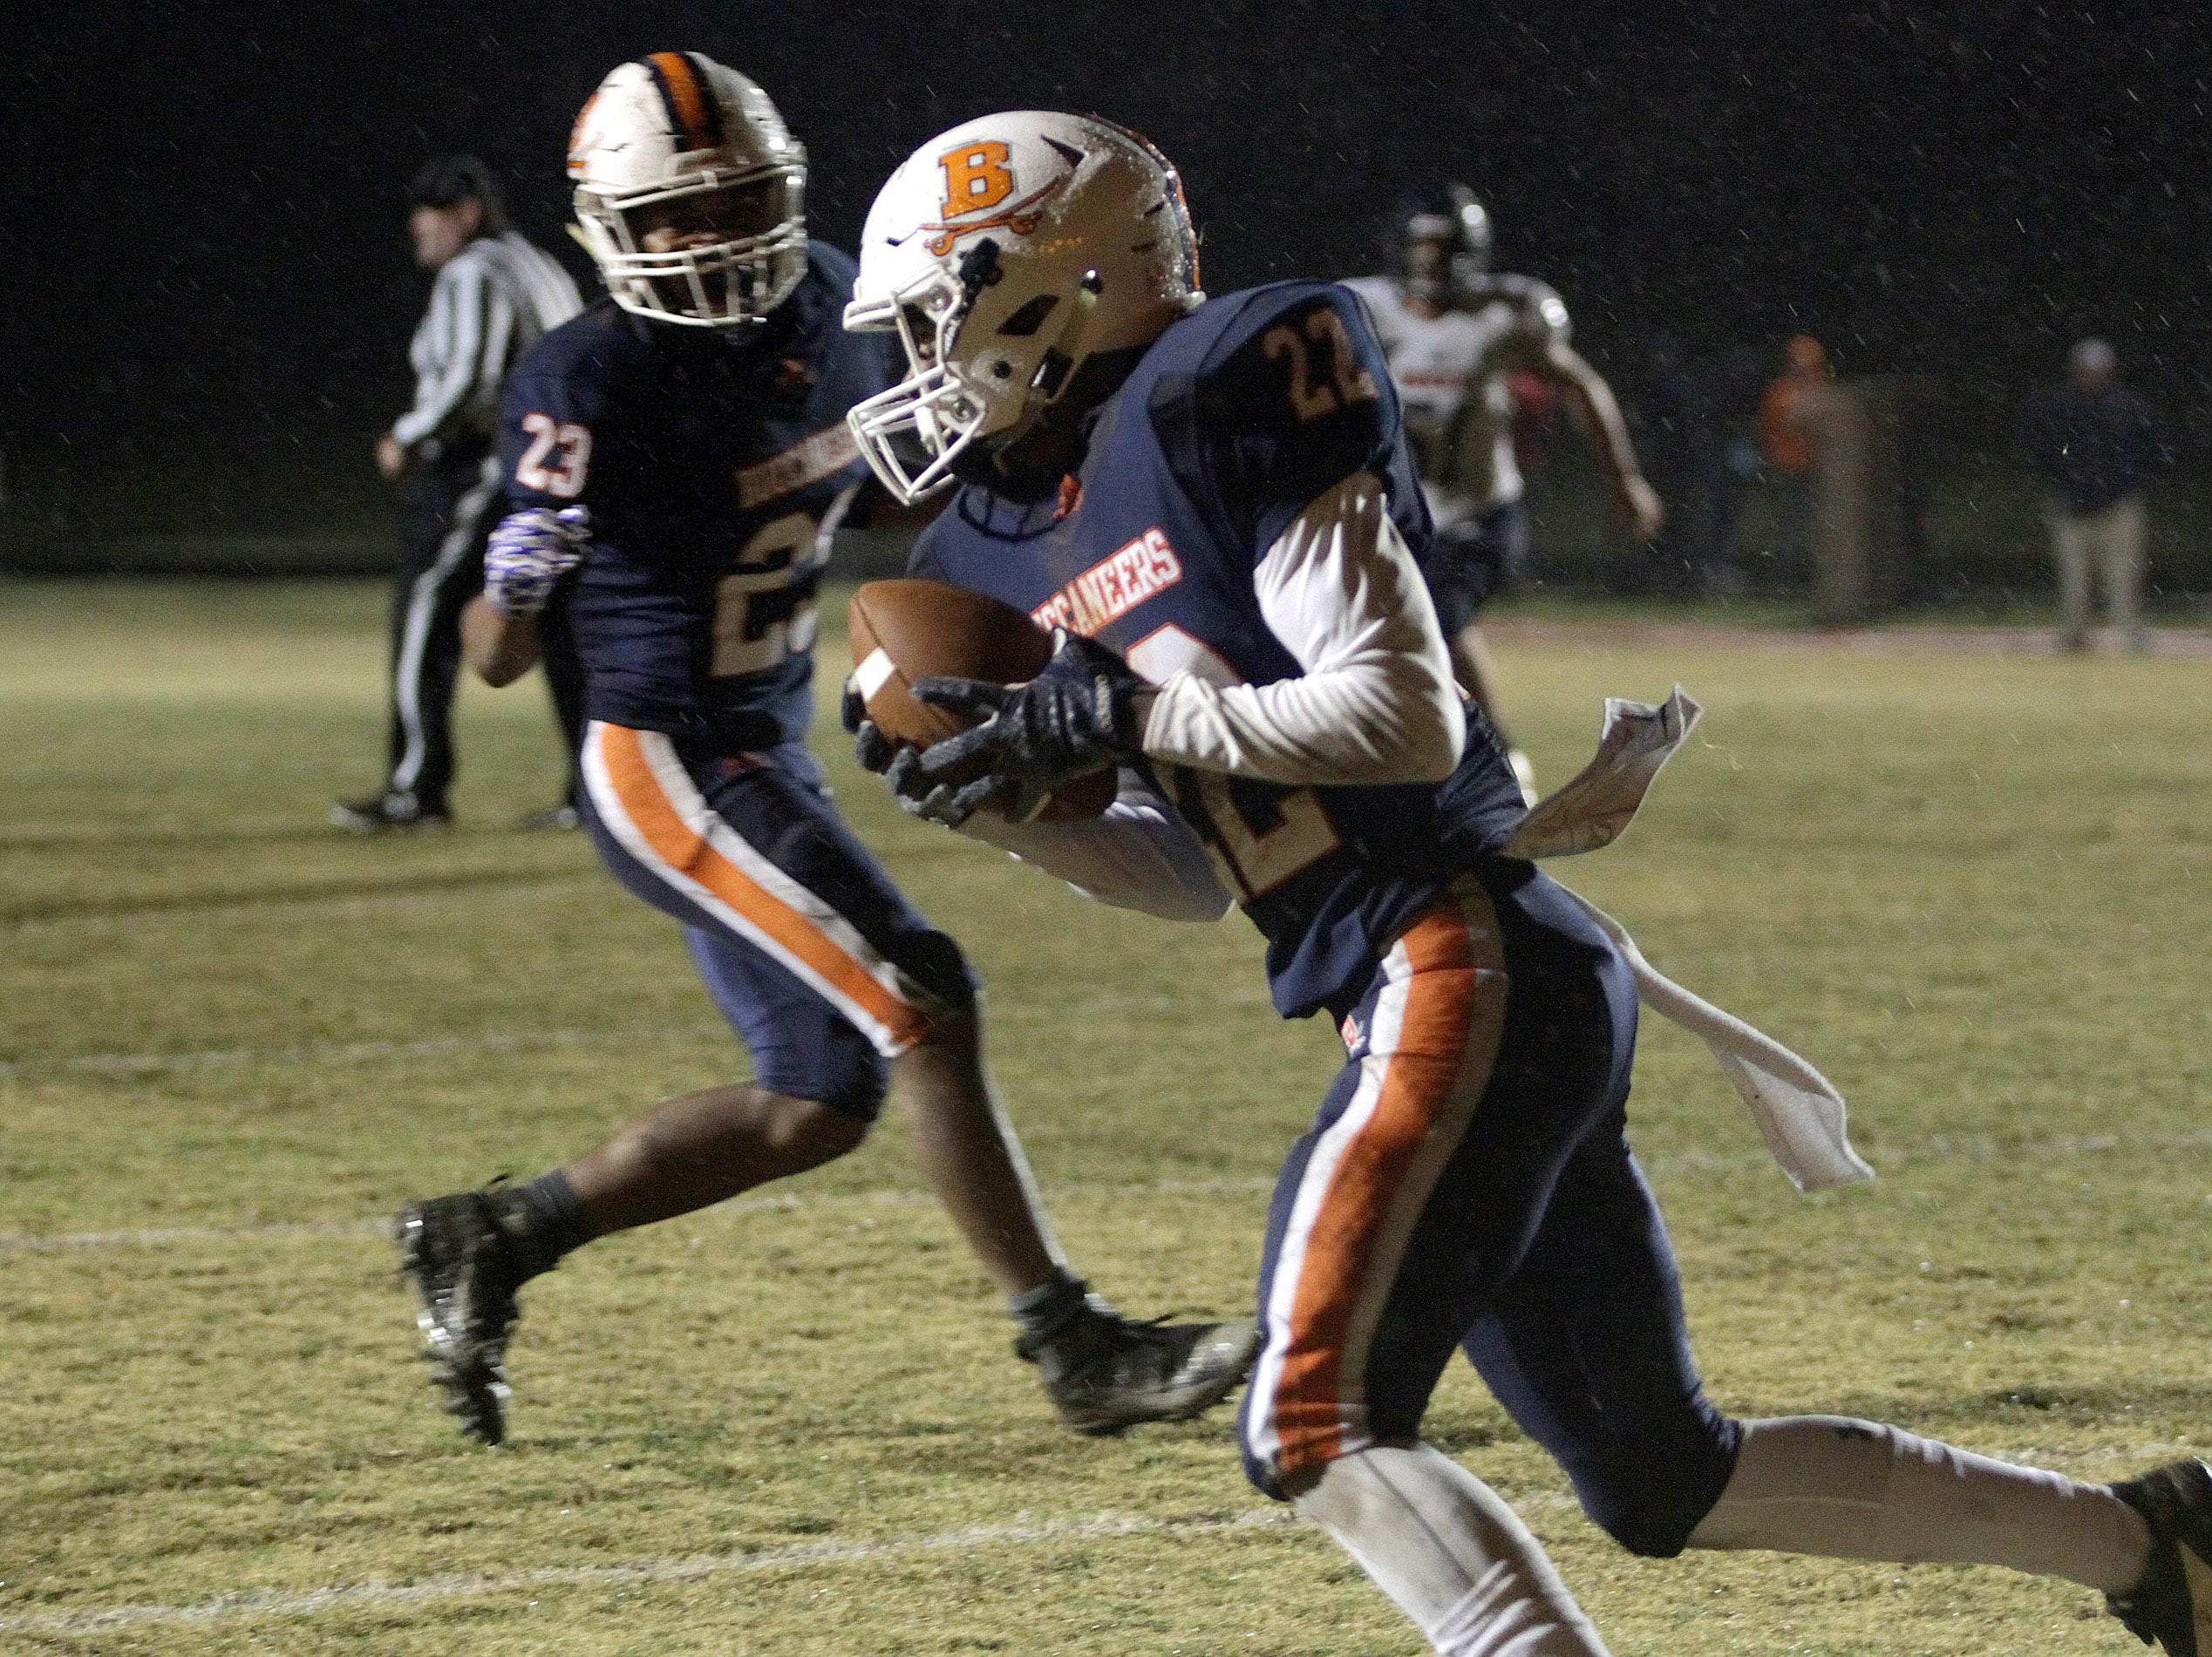 Beech's Caleb Cayton intercepts a pass against Summit on Friday, November 2, 2018.